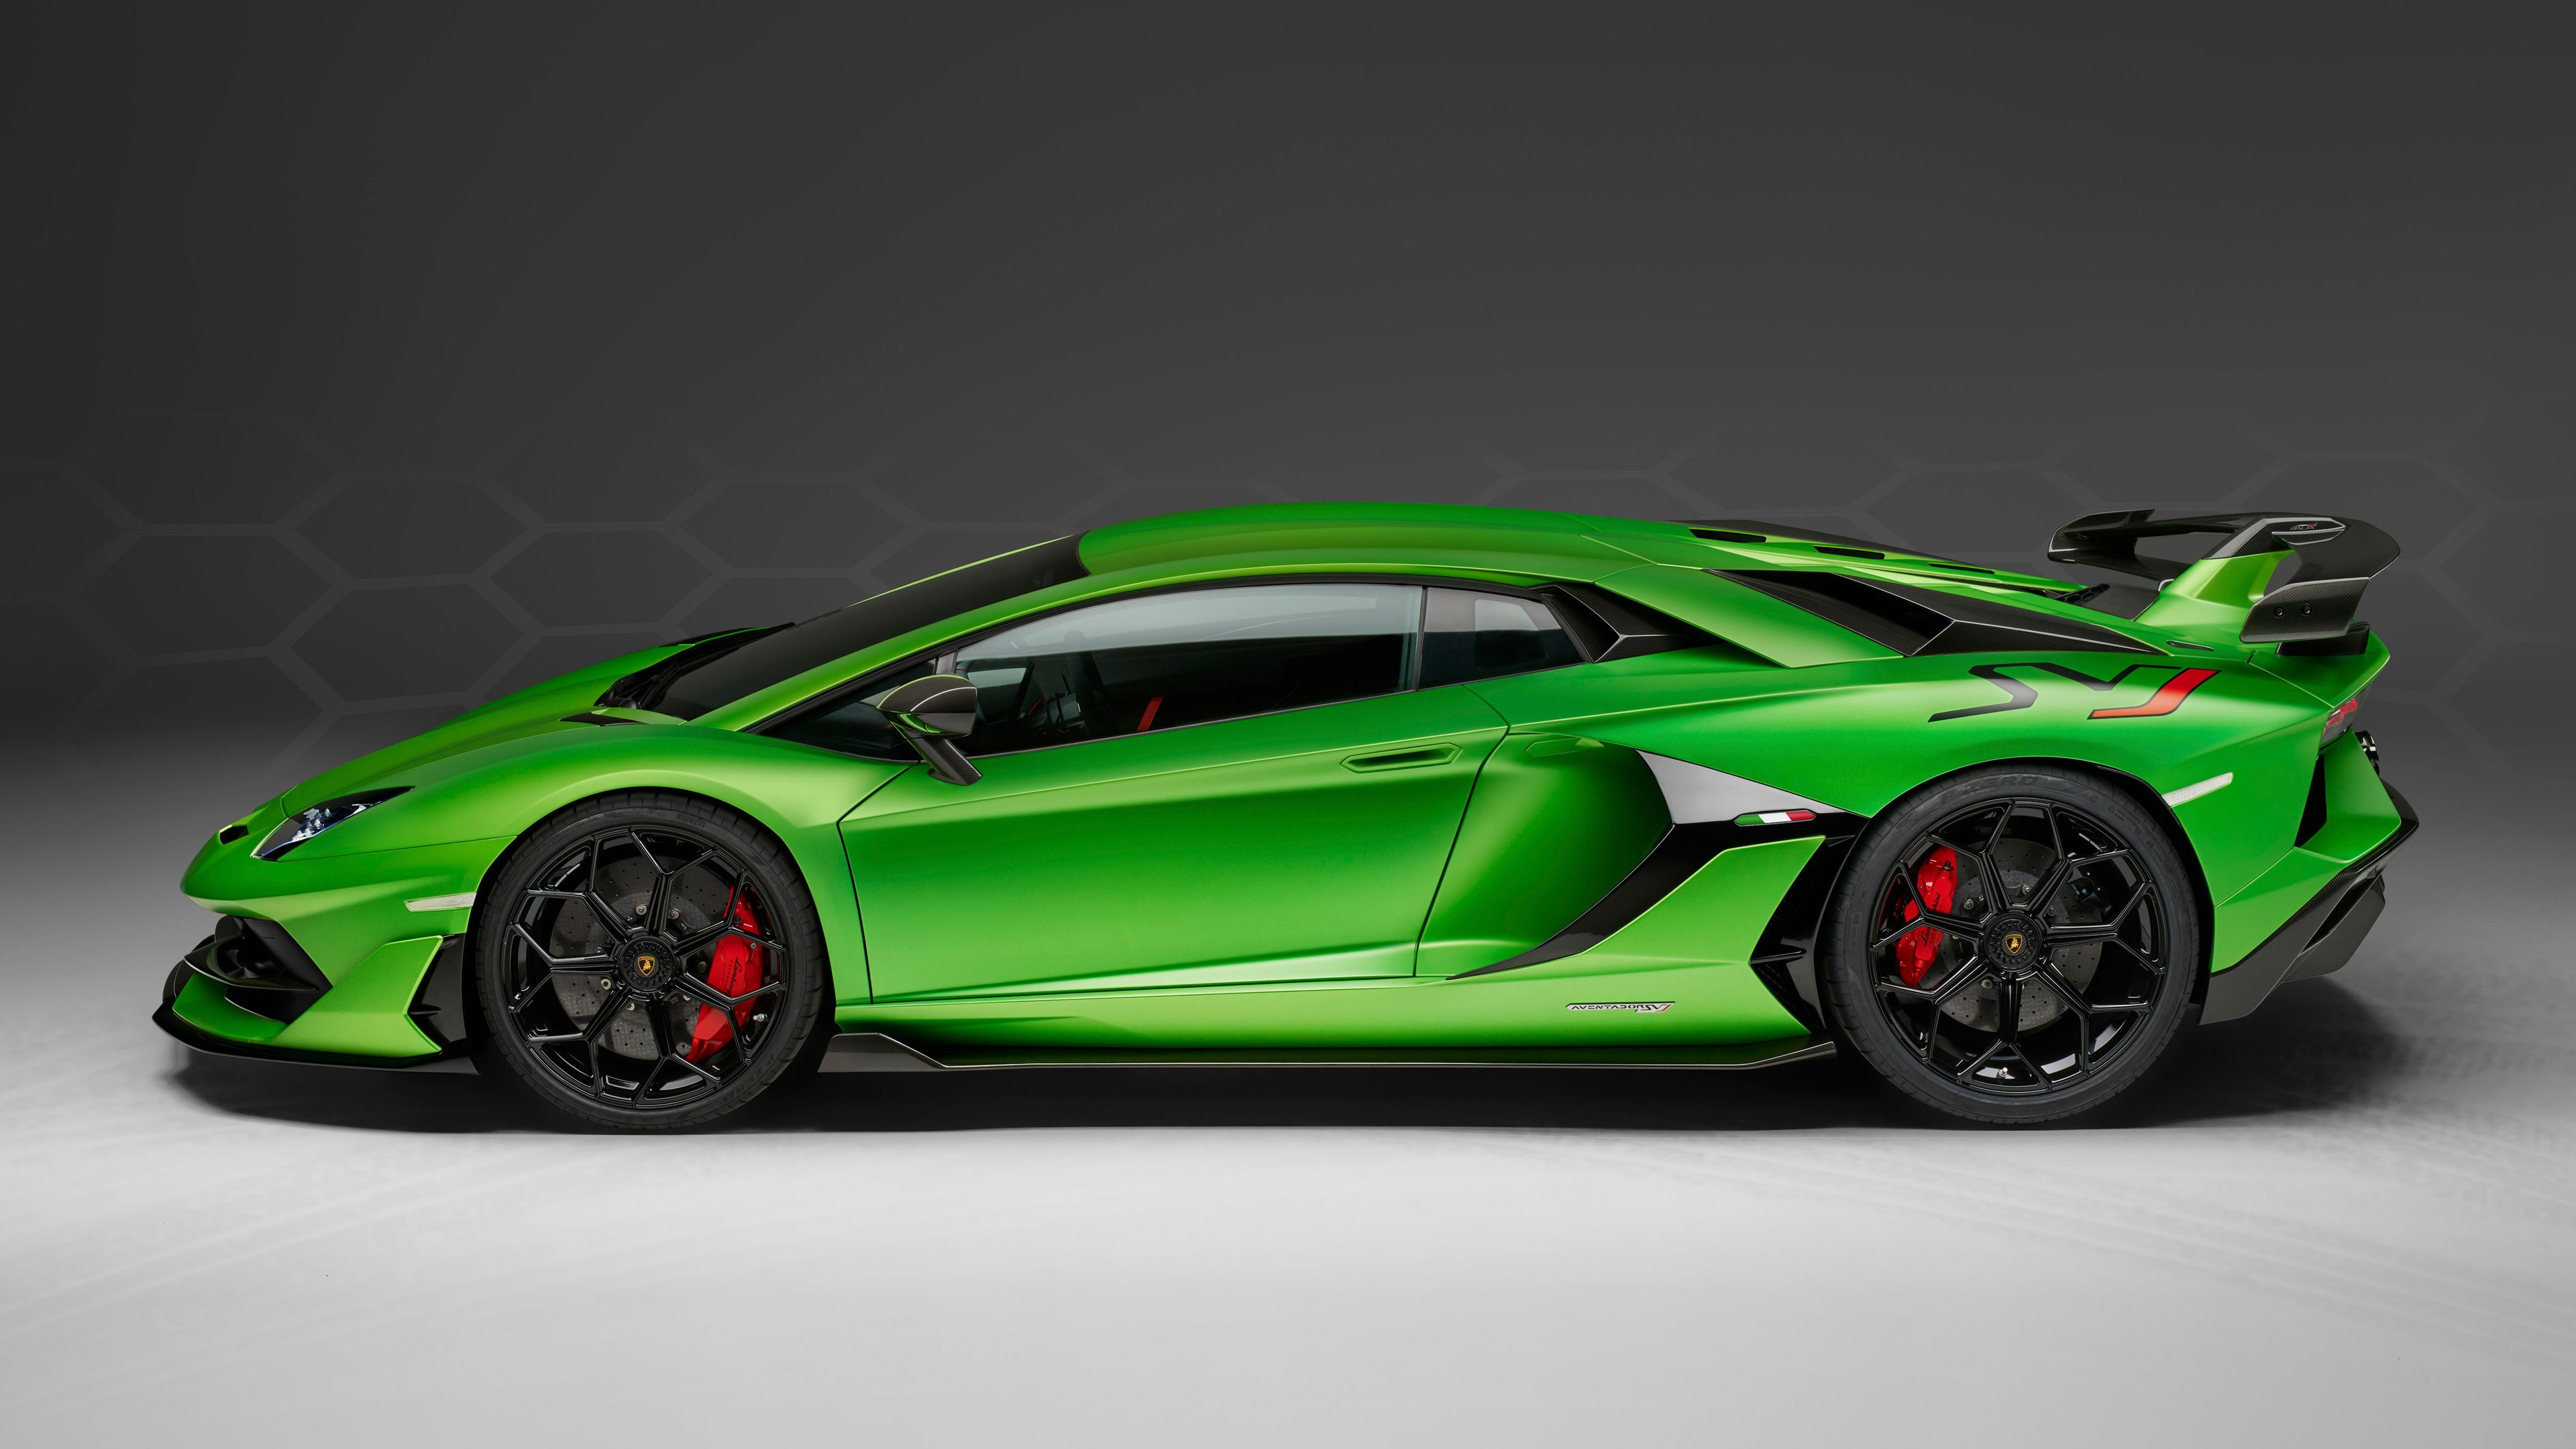 2018 Lamborghini Aventador Svj Side View Lamborghini Wallpapers Lamborghini Aventador Wallpapers Dream Cars Lamborghini Lamborghini Aventador Lamborghini Cars